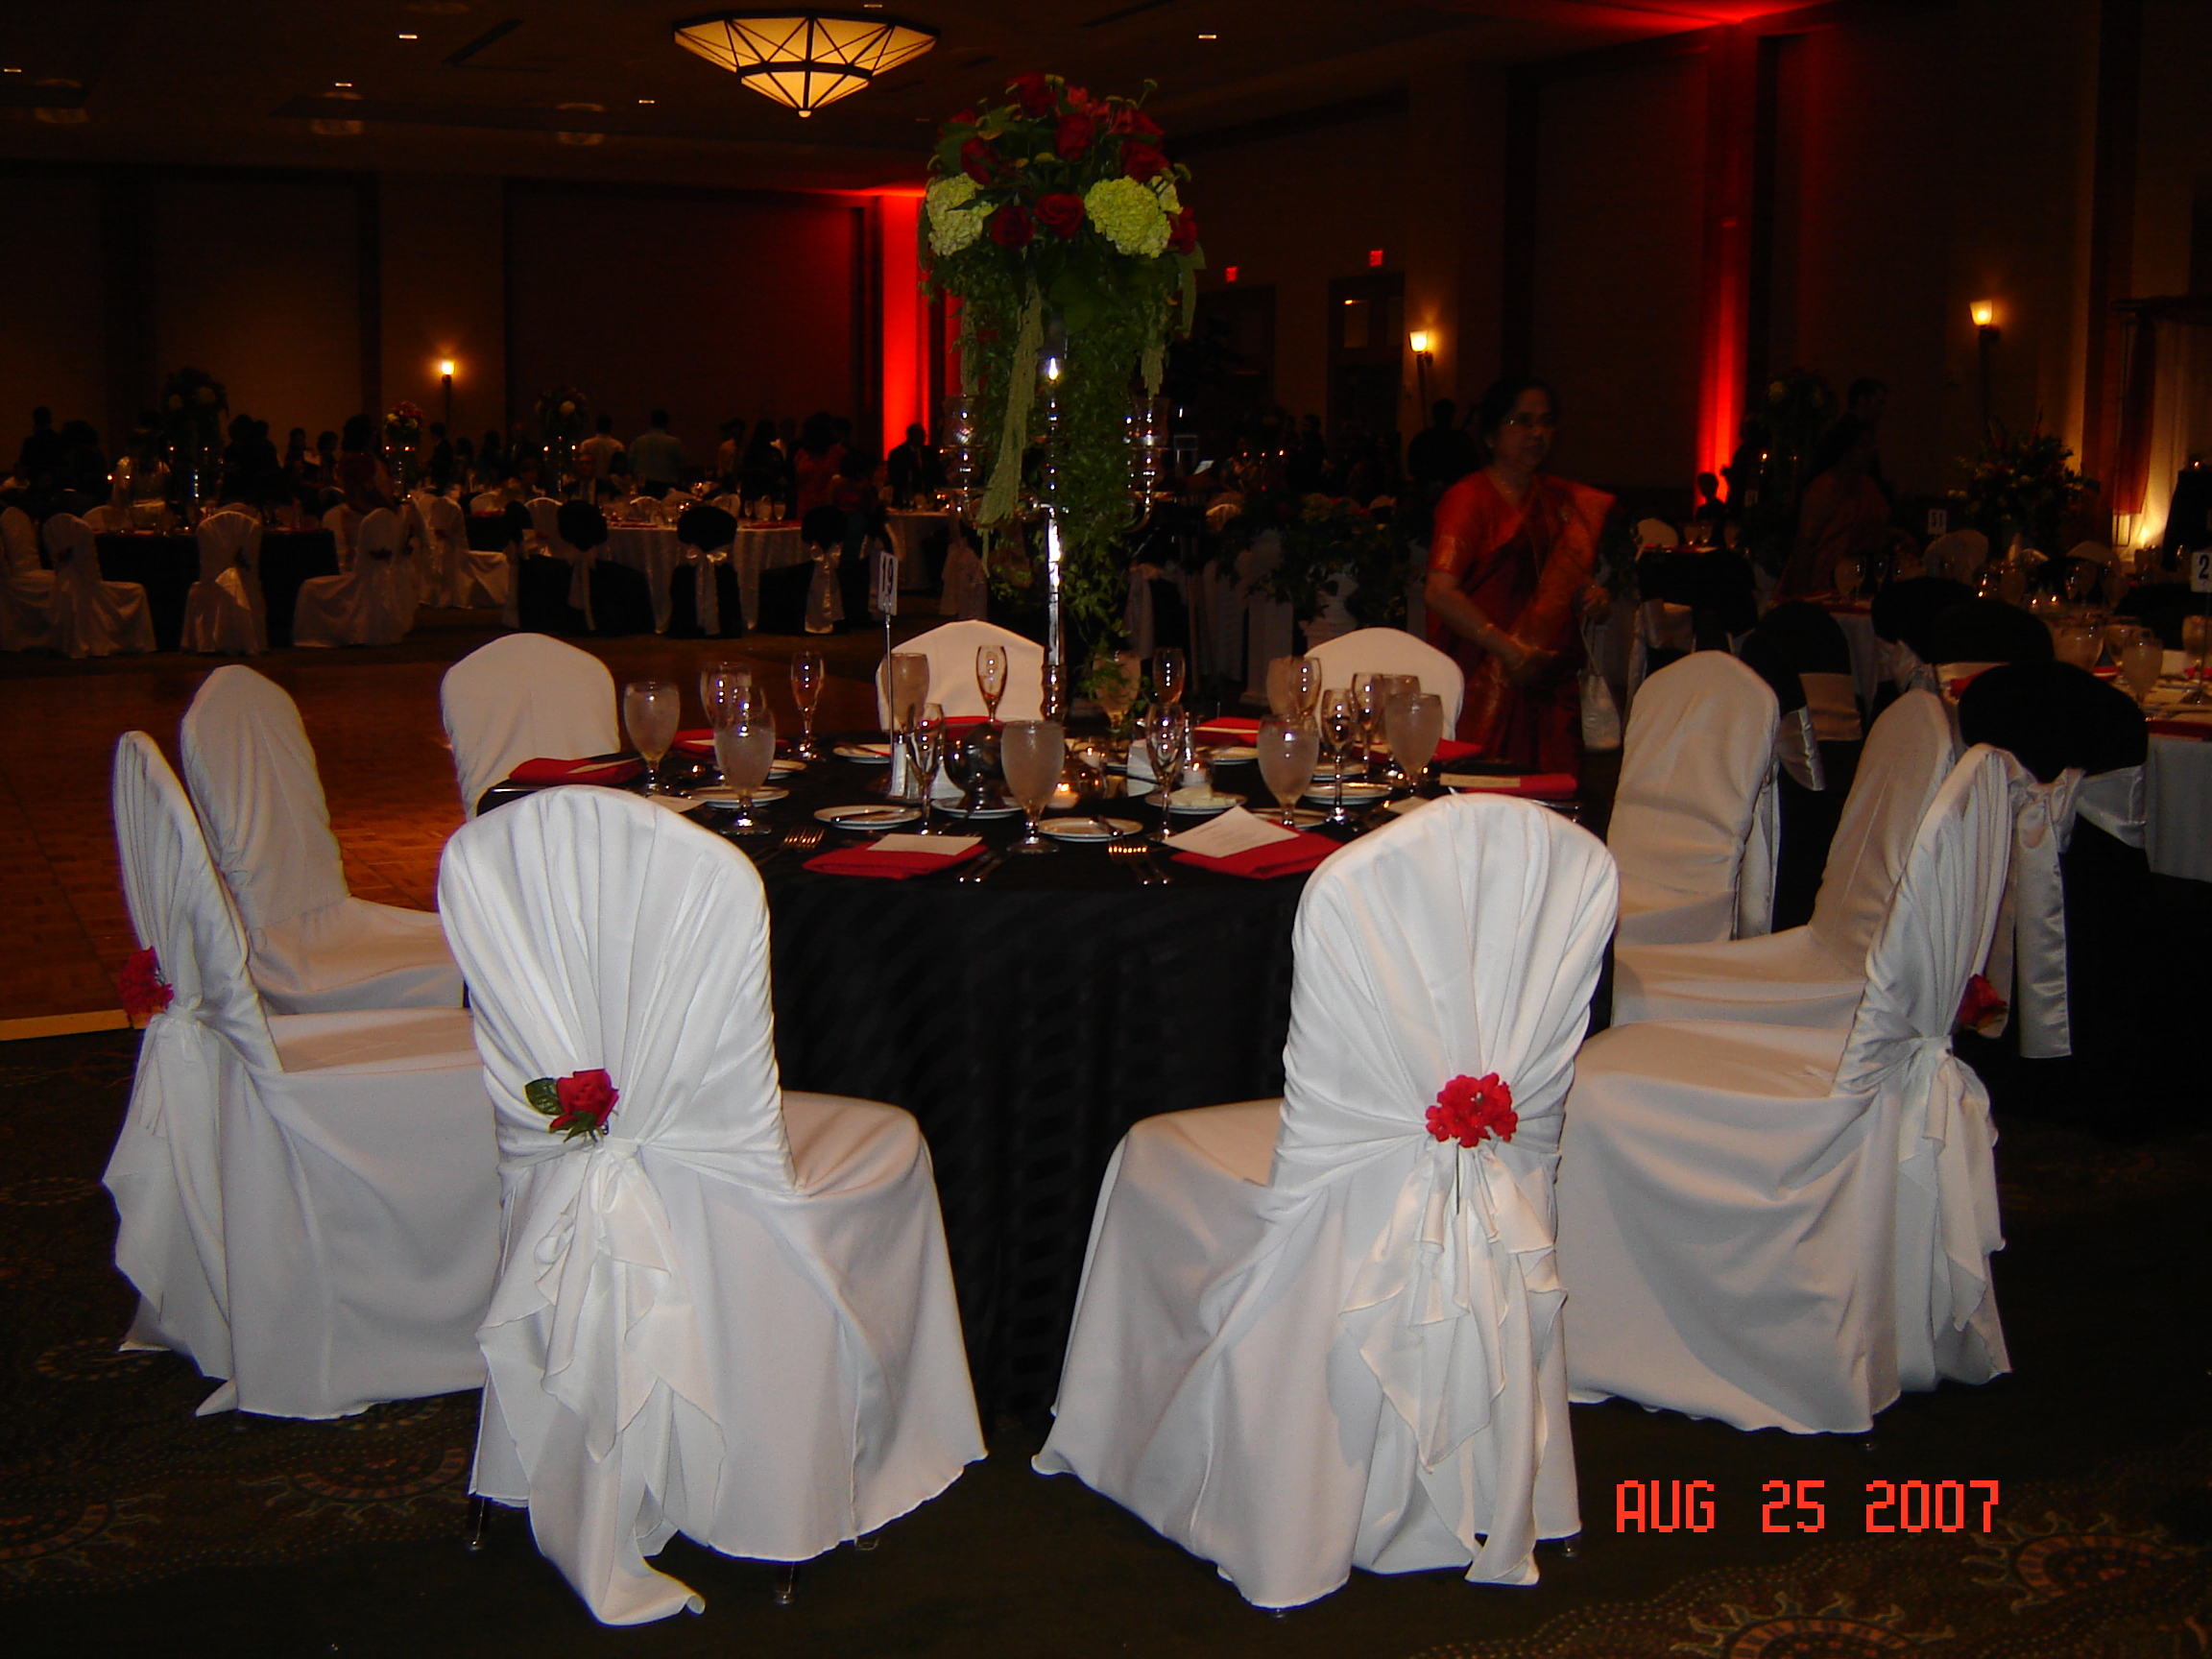 wedding chair covers for spandex navy blue simply elegant weddings cover rentals supplies fort worth texas tx